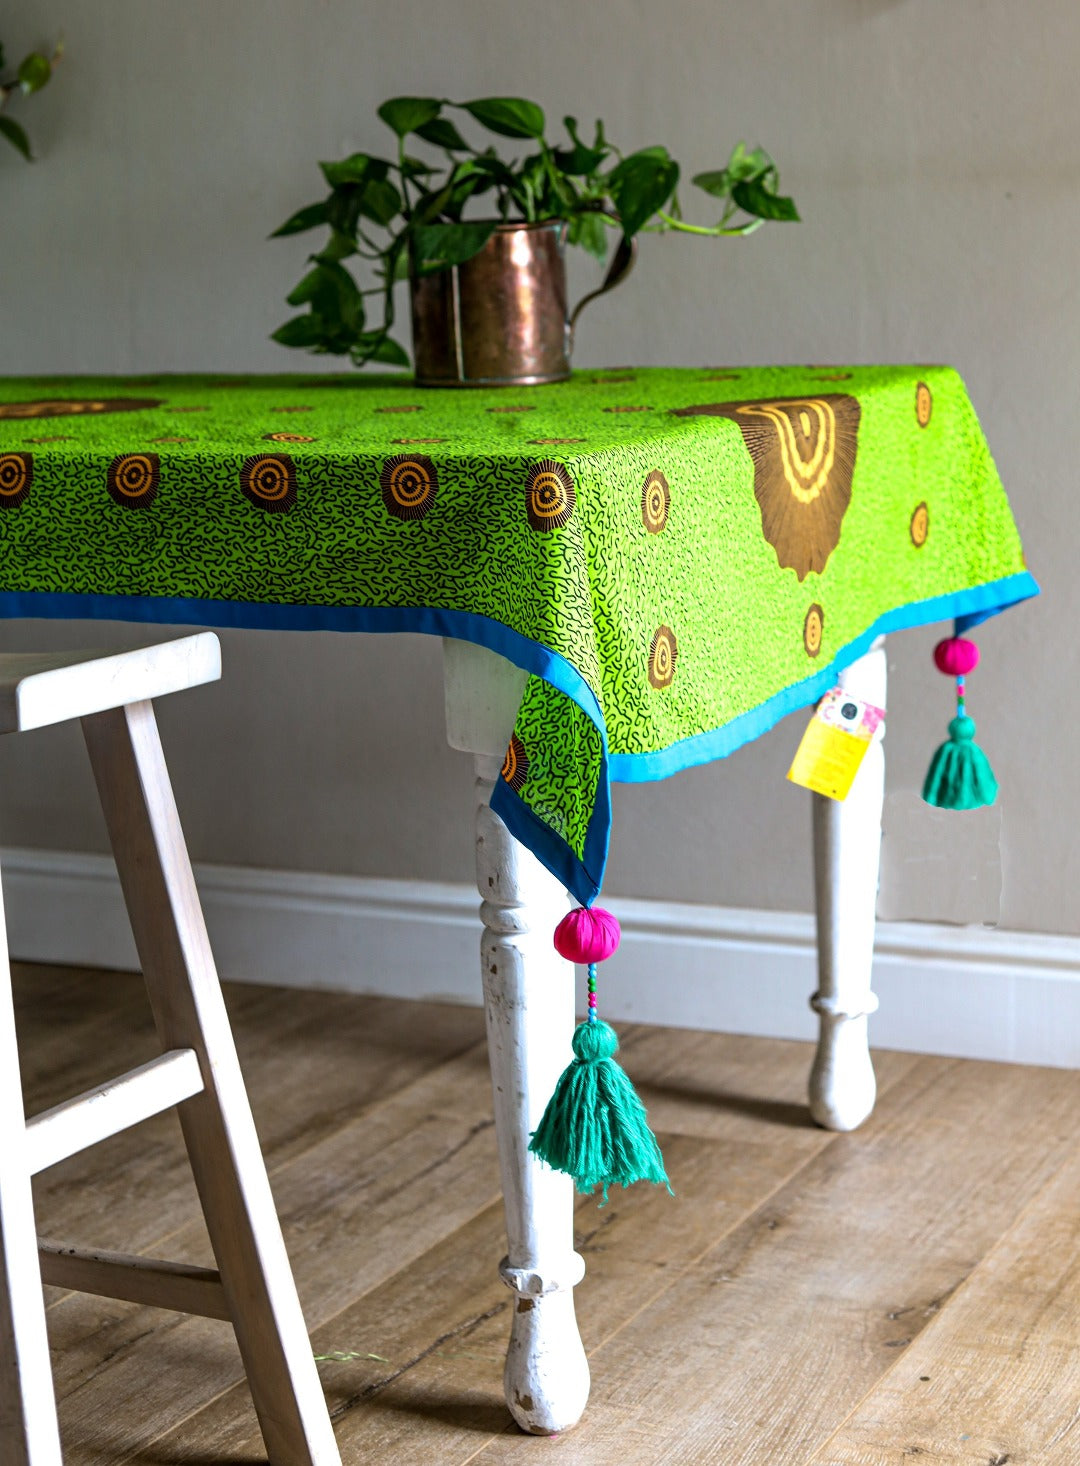 tassled table cloth: pastures